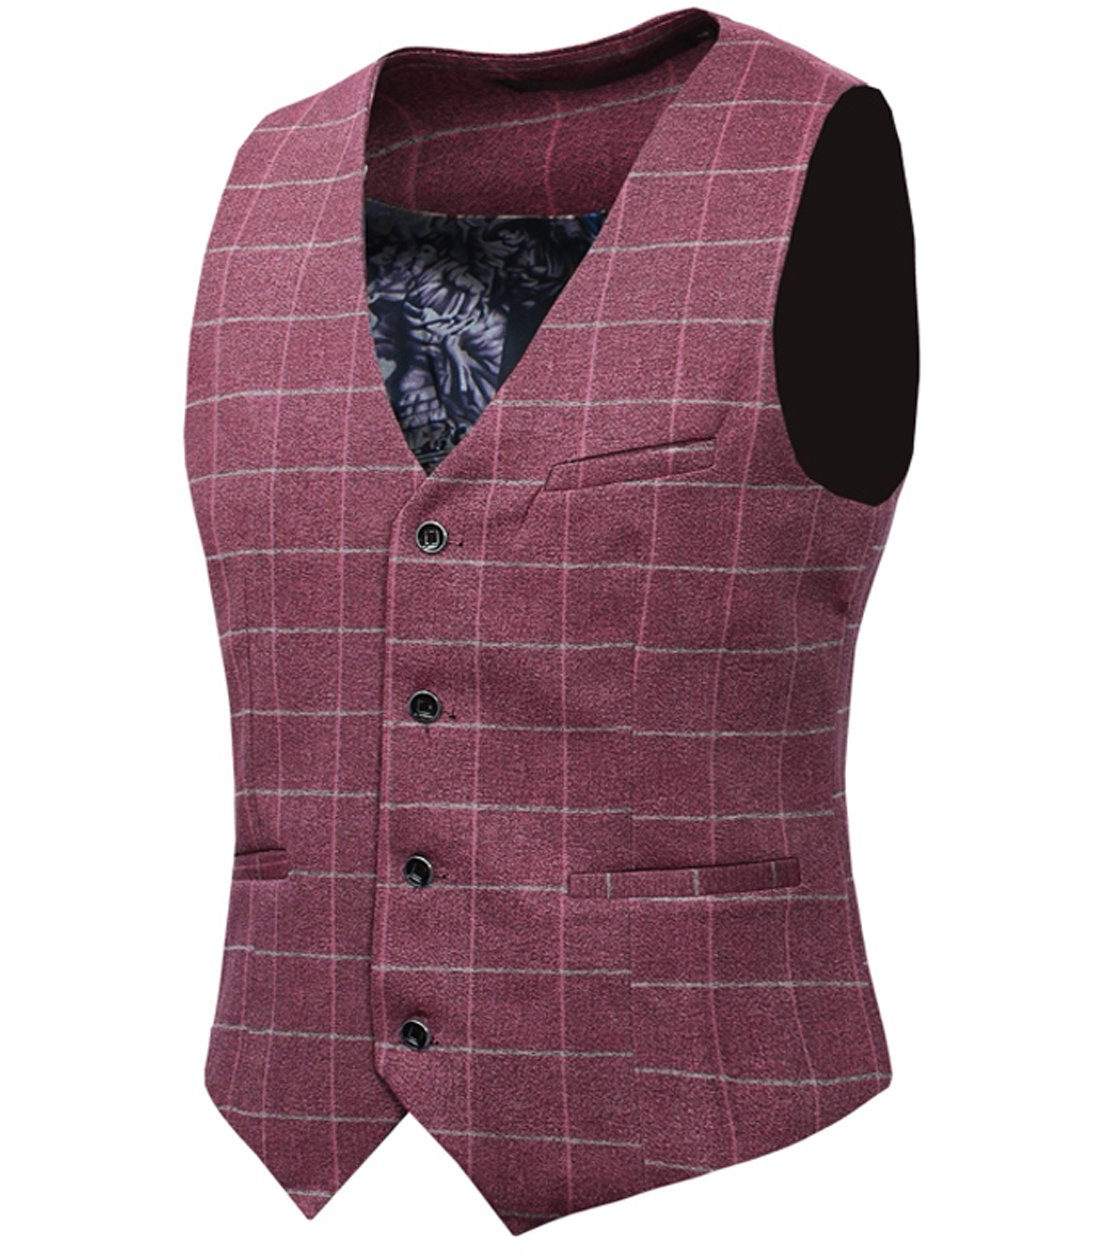 Cloudstyle Mens Vintage Tweed Suit Waistcoat Checkered Slim Fit V-neck Sleeveless Tops Smart Formal TZMJ05